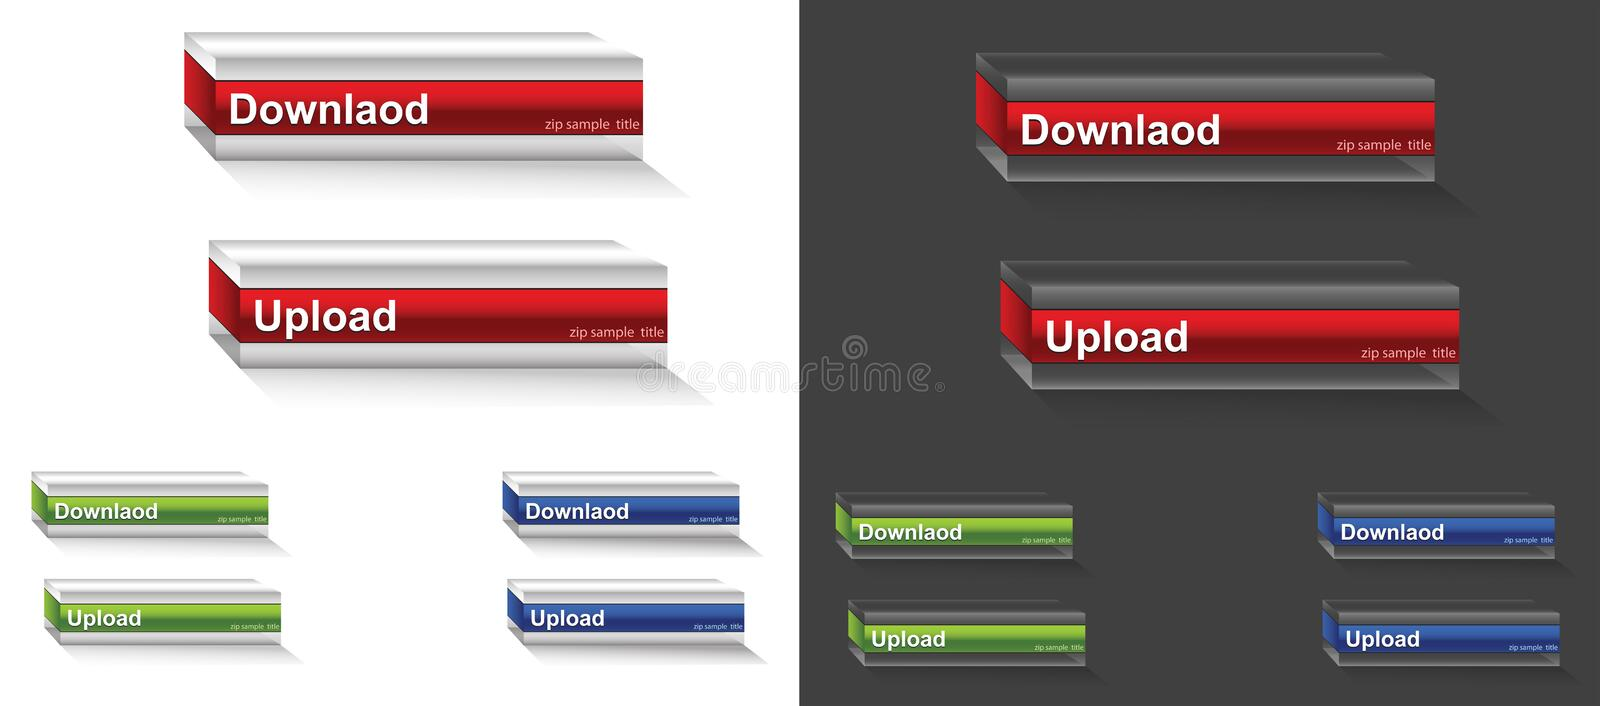 Download 3D Download button stock vector. Image of network, http - 23870615